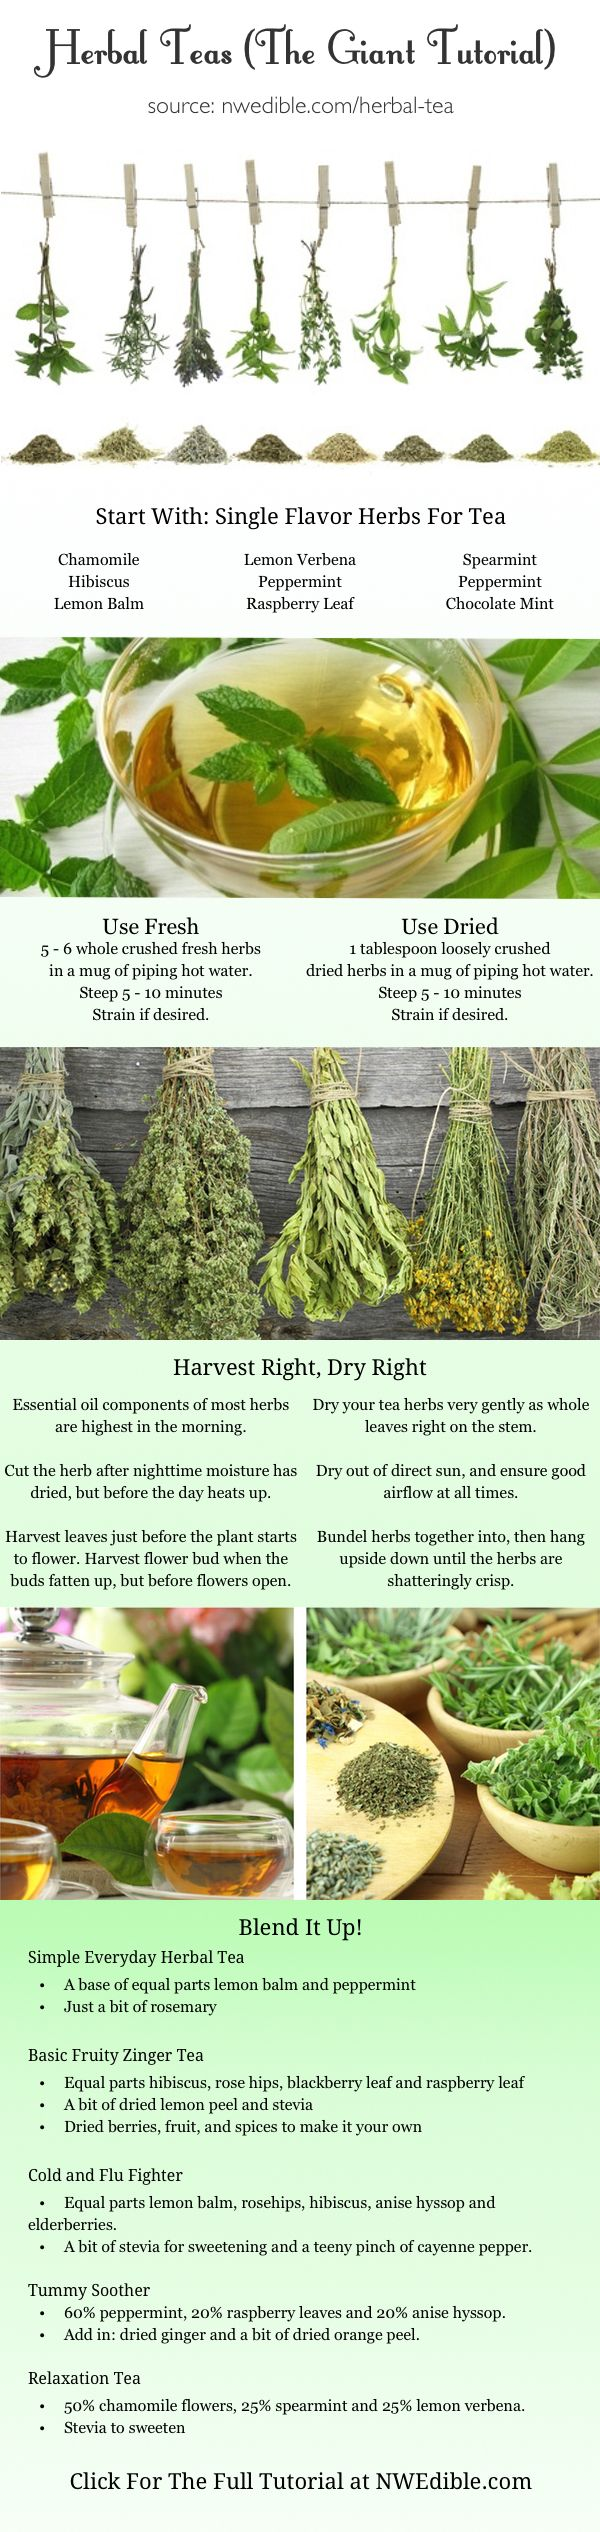 Diy herbal tea from your own backyard full tutorial at www diy herbal tea from your own backyard i was tempted to pin this in home decor i have always loved the look of dried herbs hanging in a kitchen fandeluxe Ebook collections